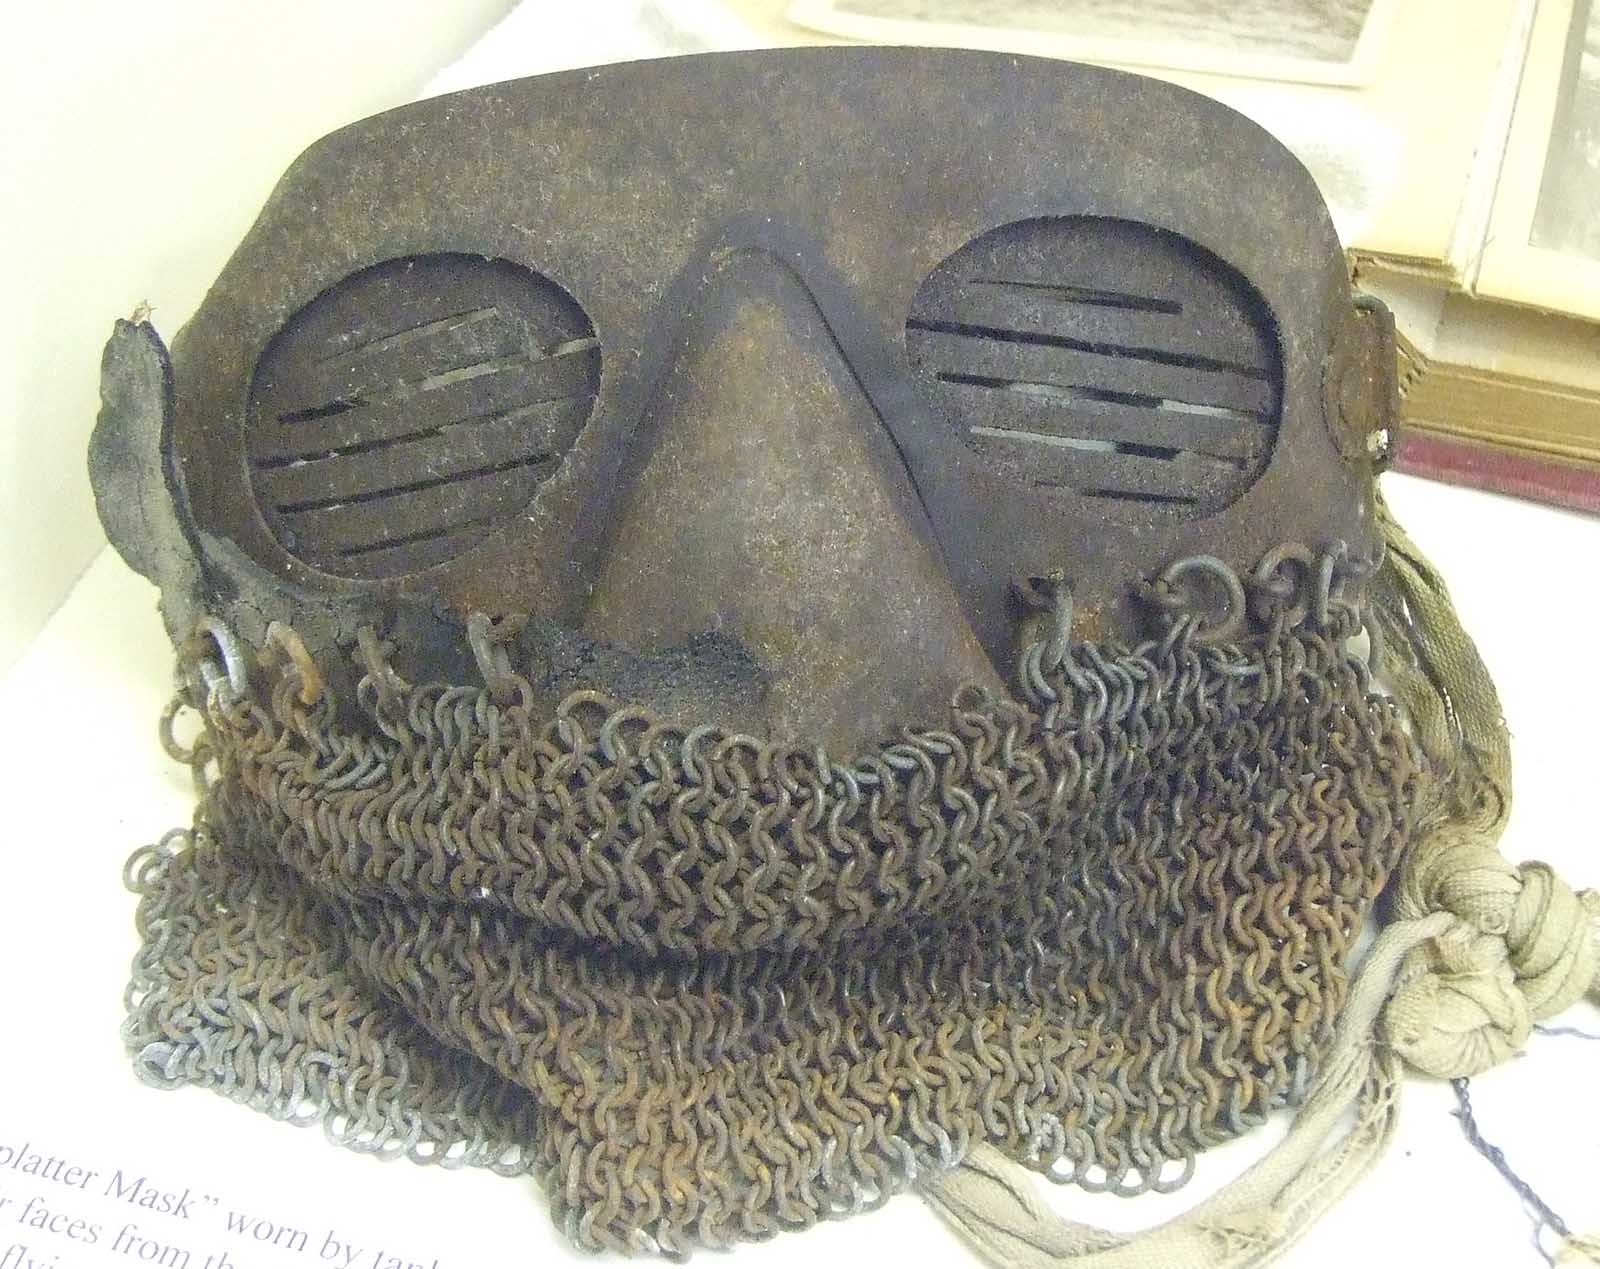 A surviving splatter mask in a British museum.